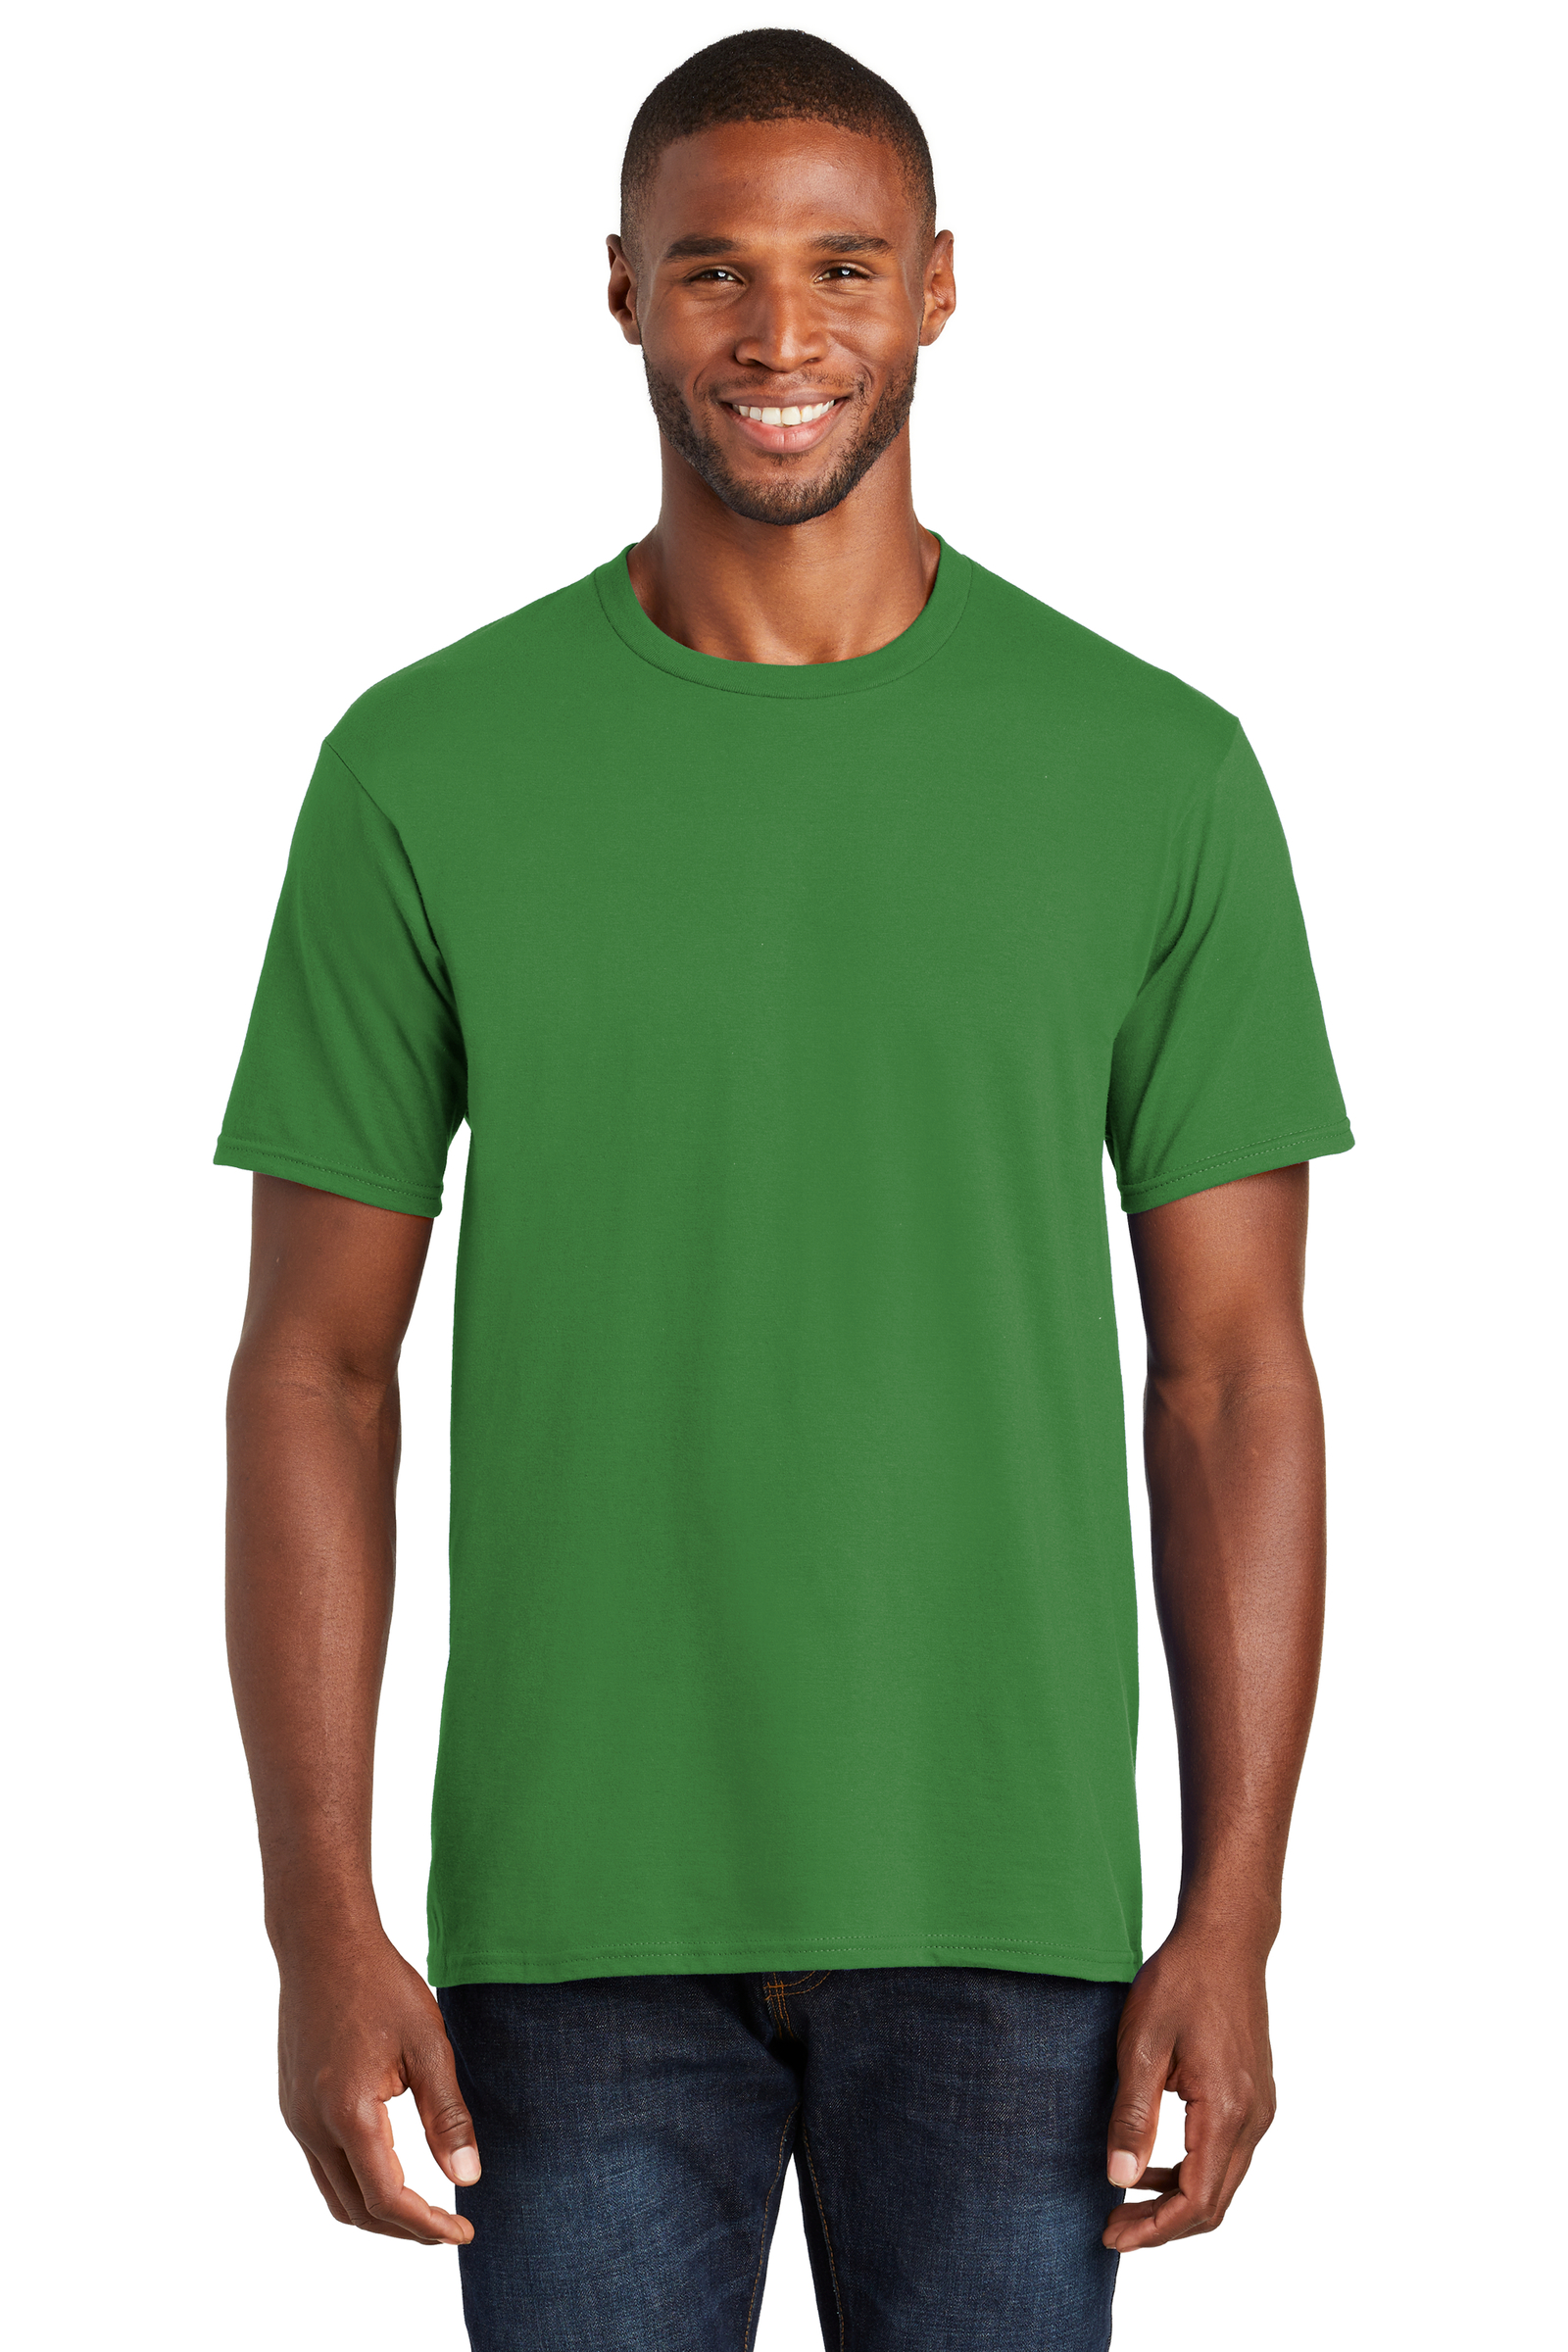 Port & Company Embroidered Men's Fan Favorite Tee